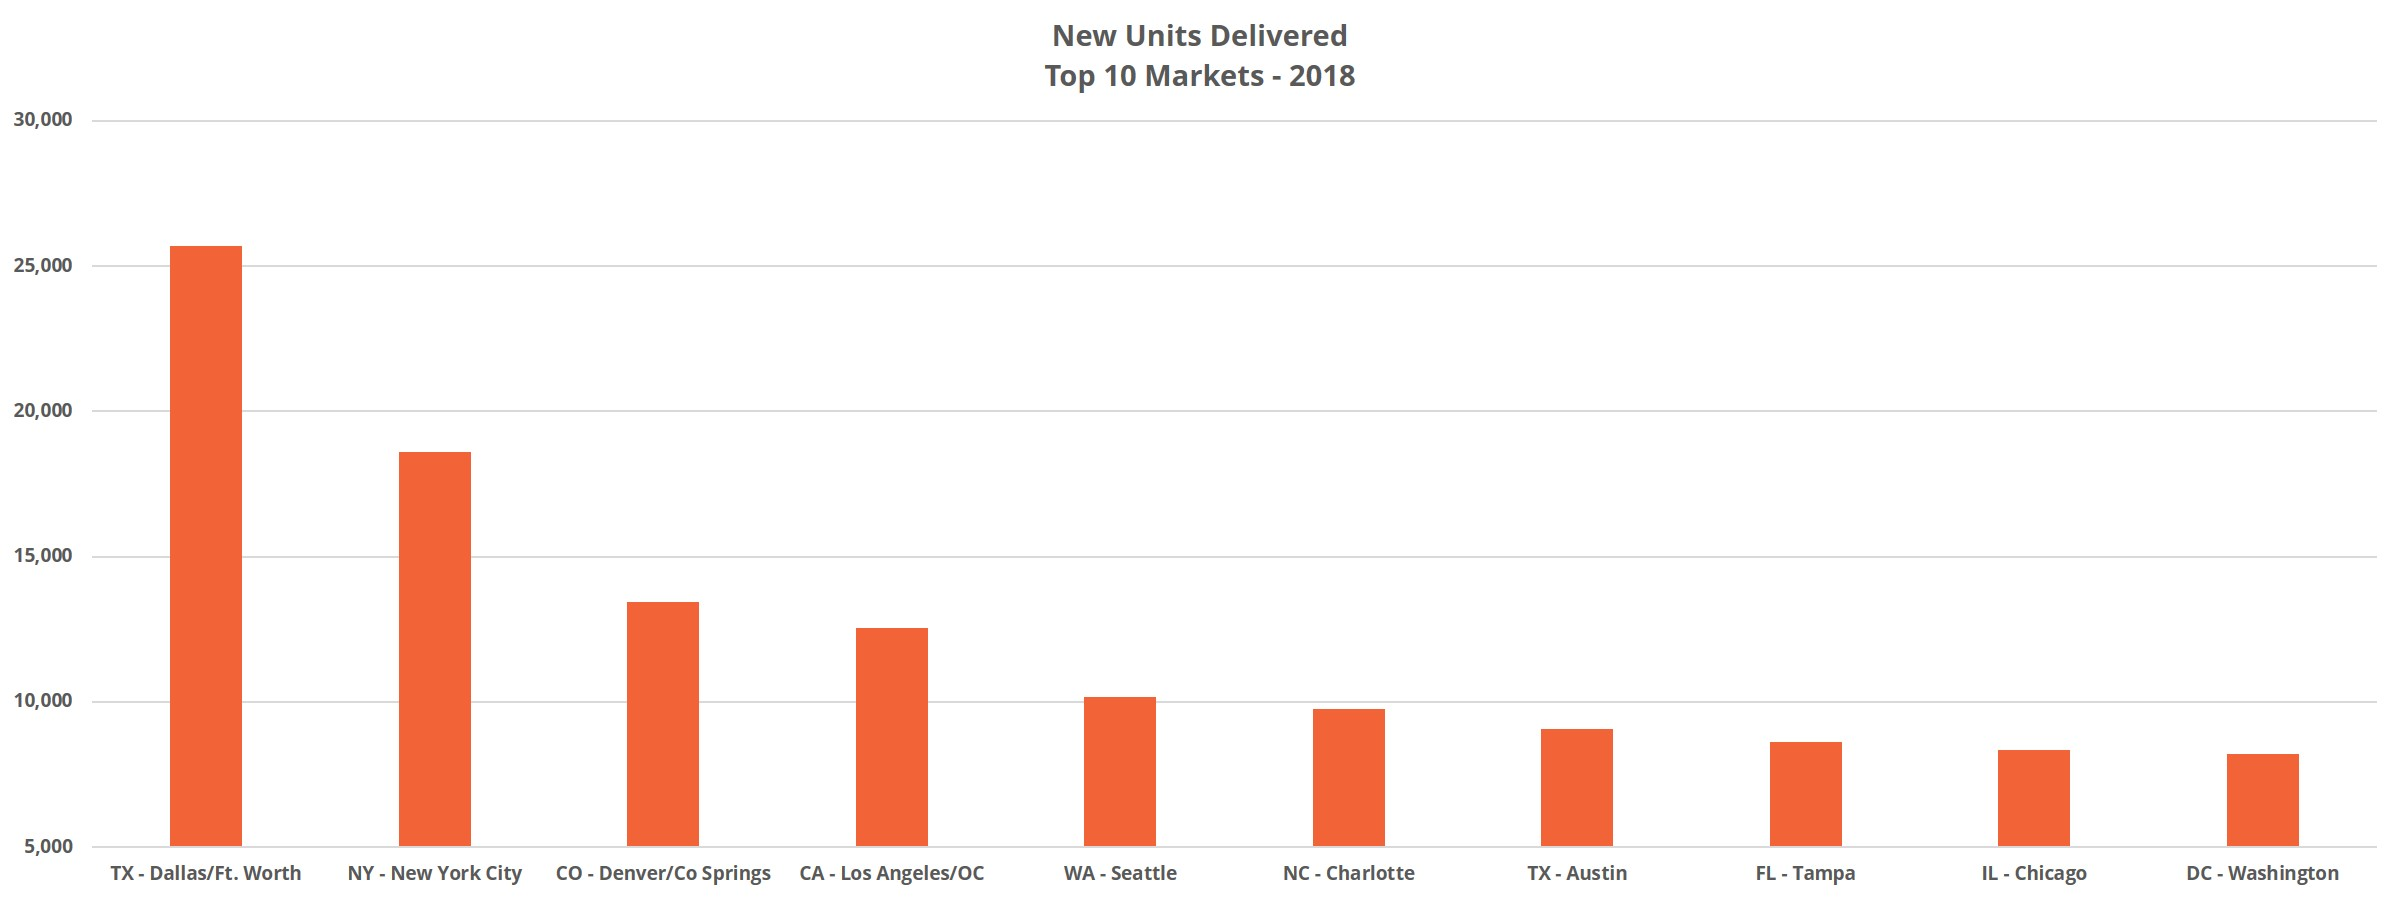 New Units Delivered Top 10 Markets - 2018 Review